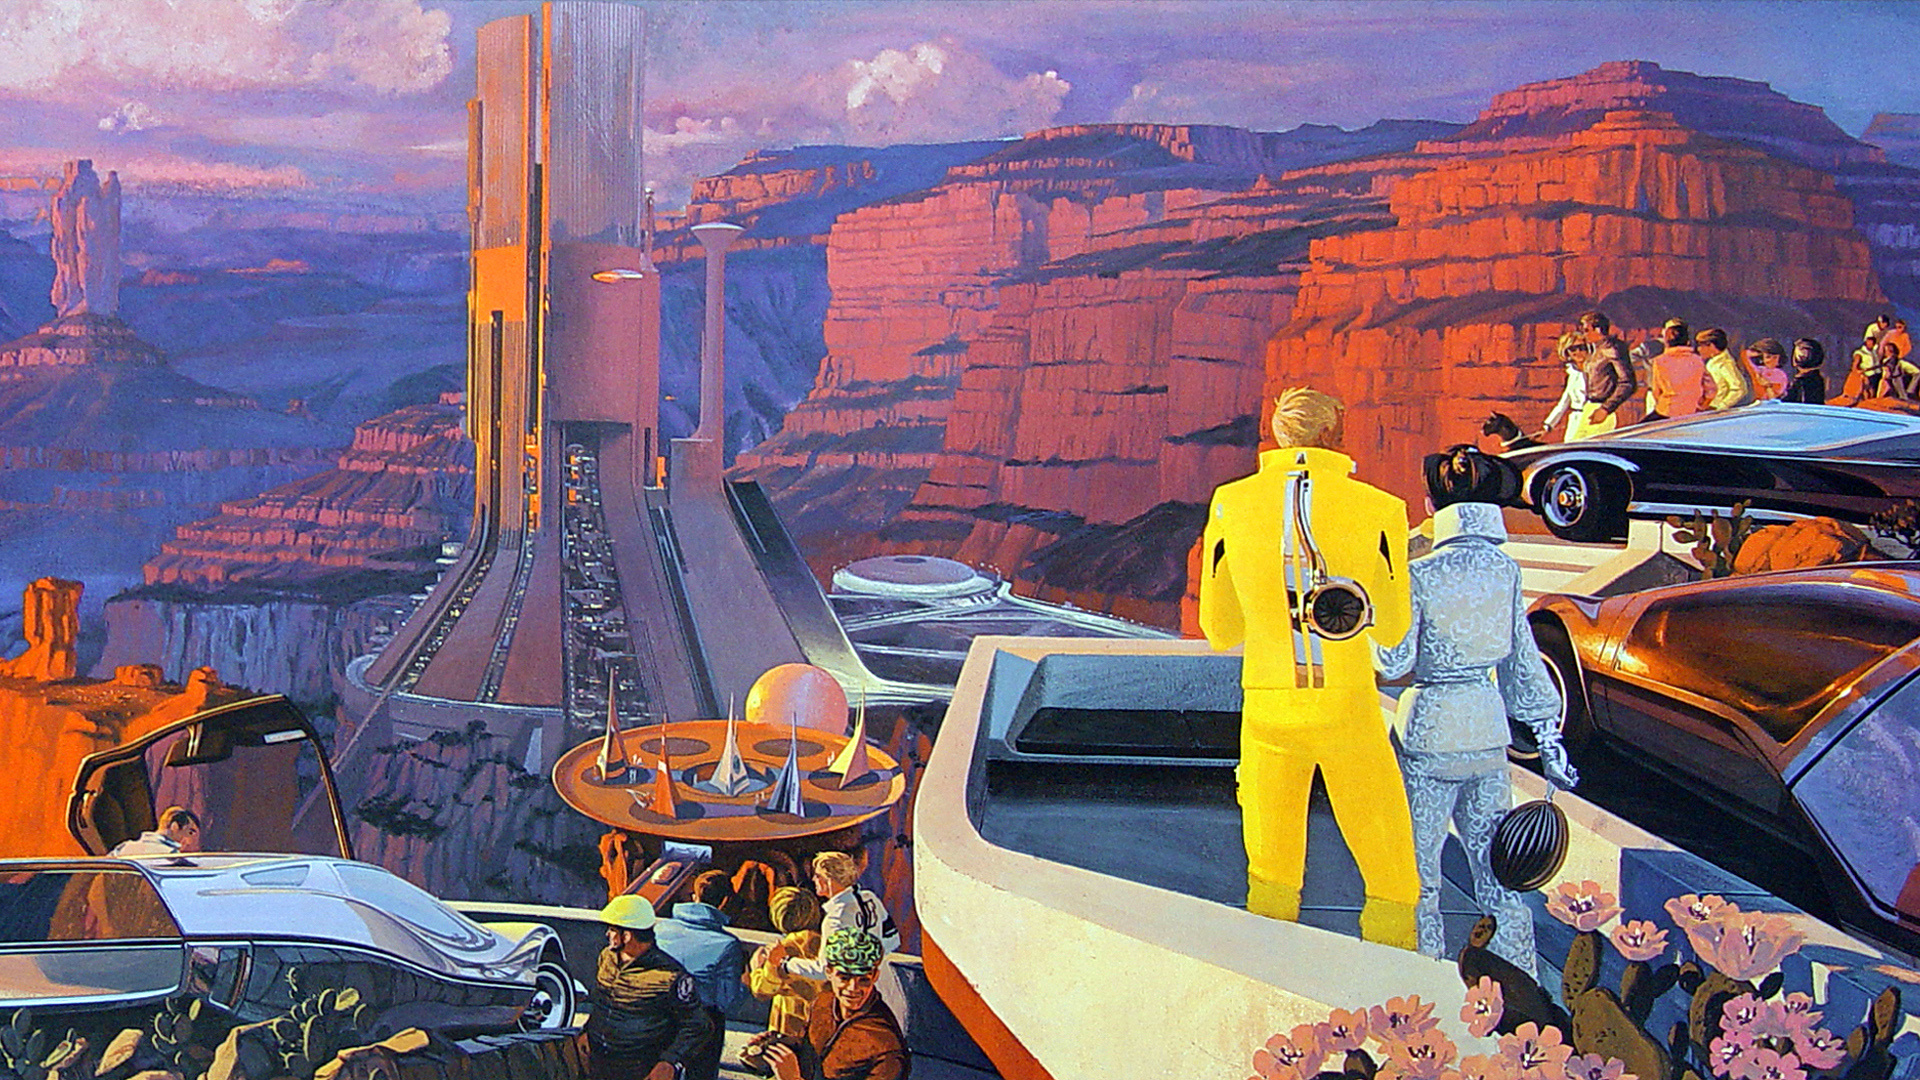 Retro Future Vision Of The Arizona Desert By John Berkey And Syd Mead X Post With R ImaginaryLandscapes